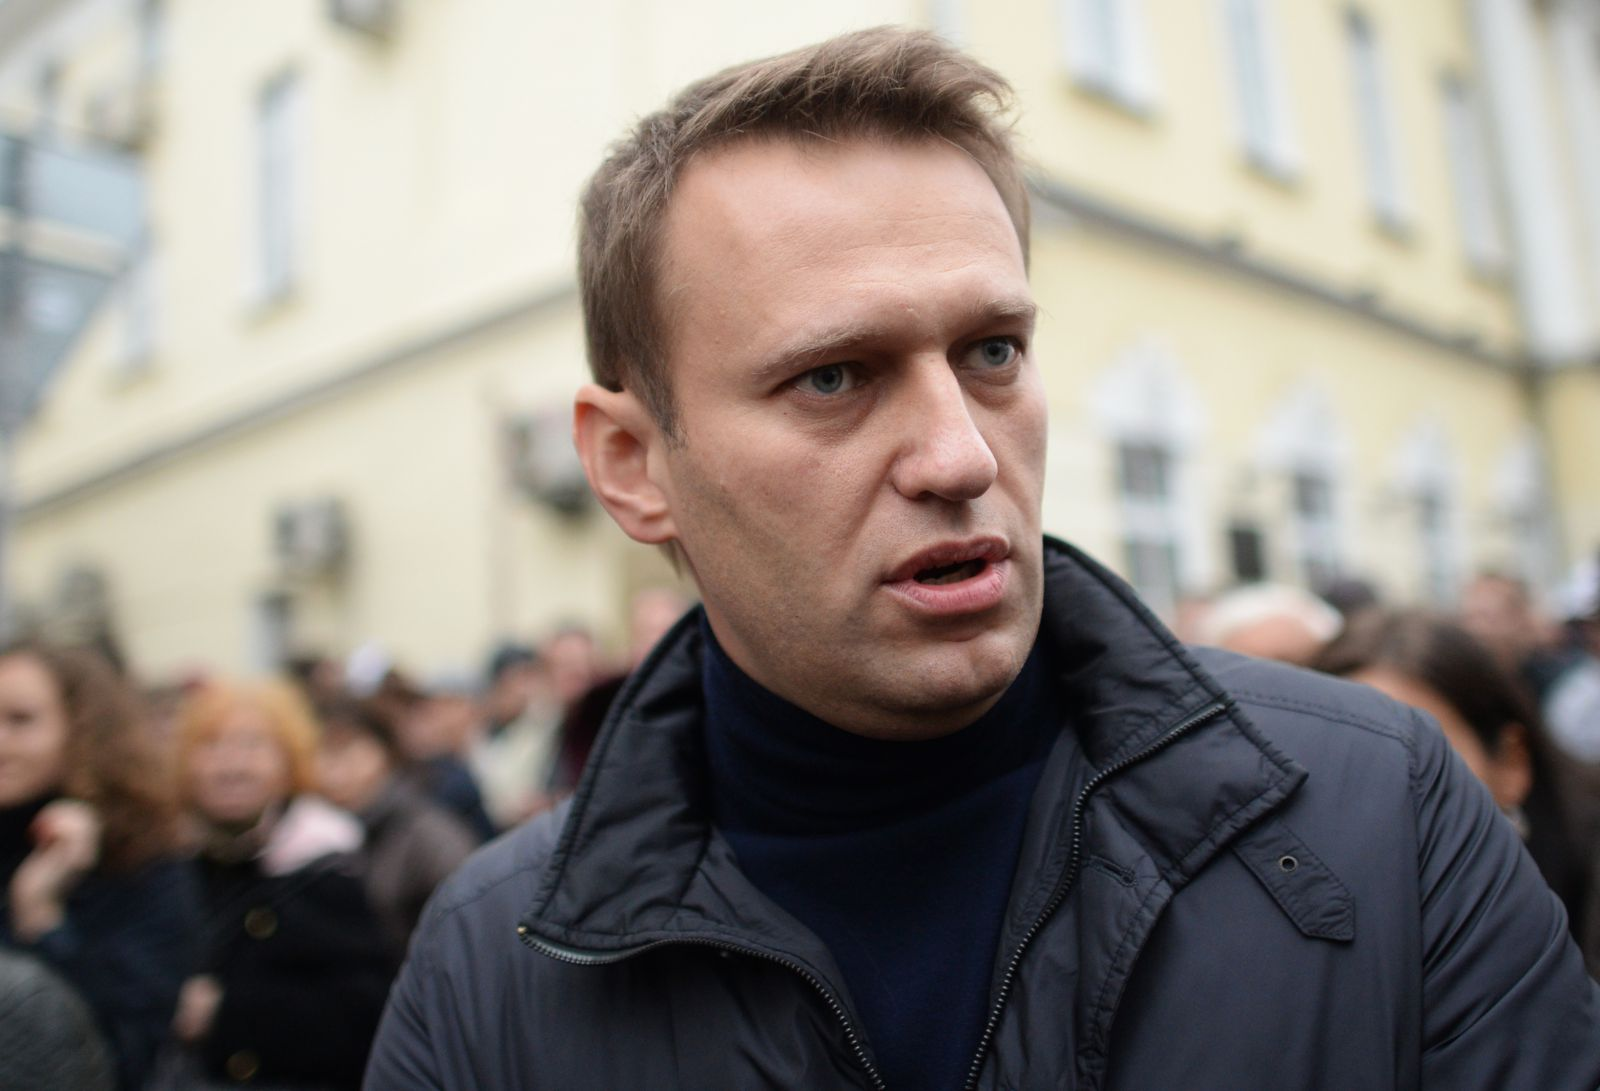 PACE adopts resolution on Navalny